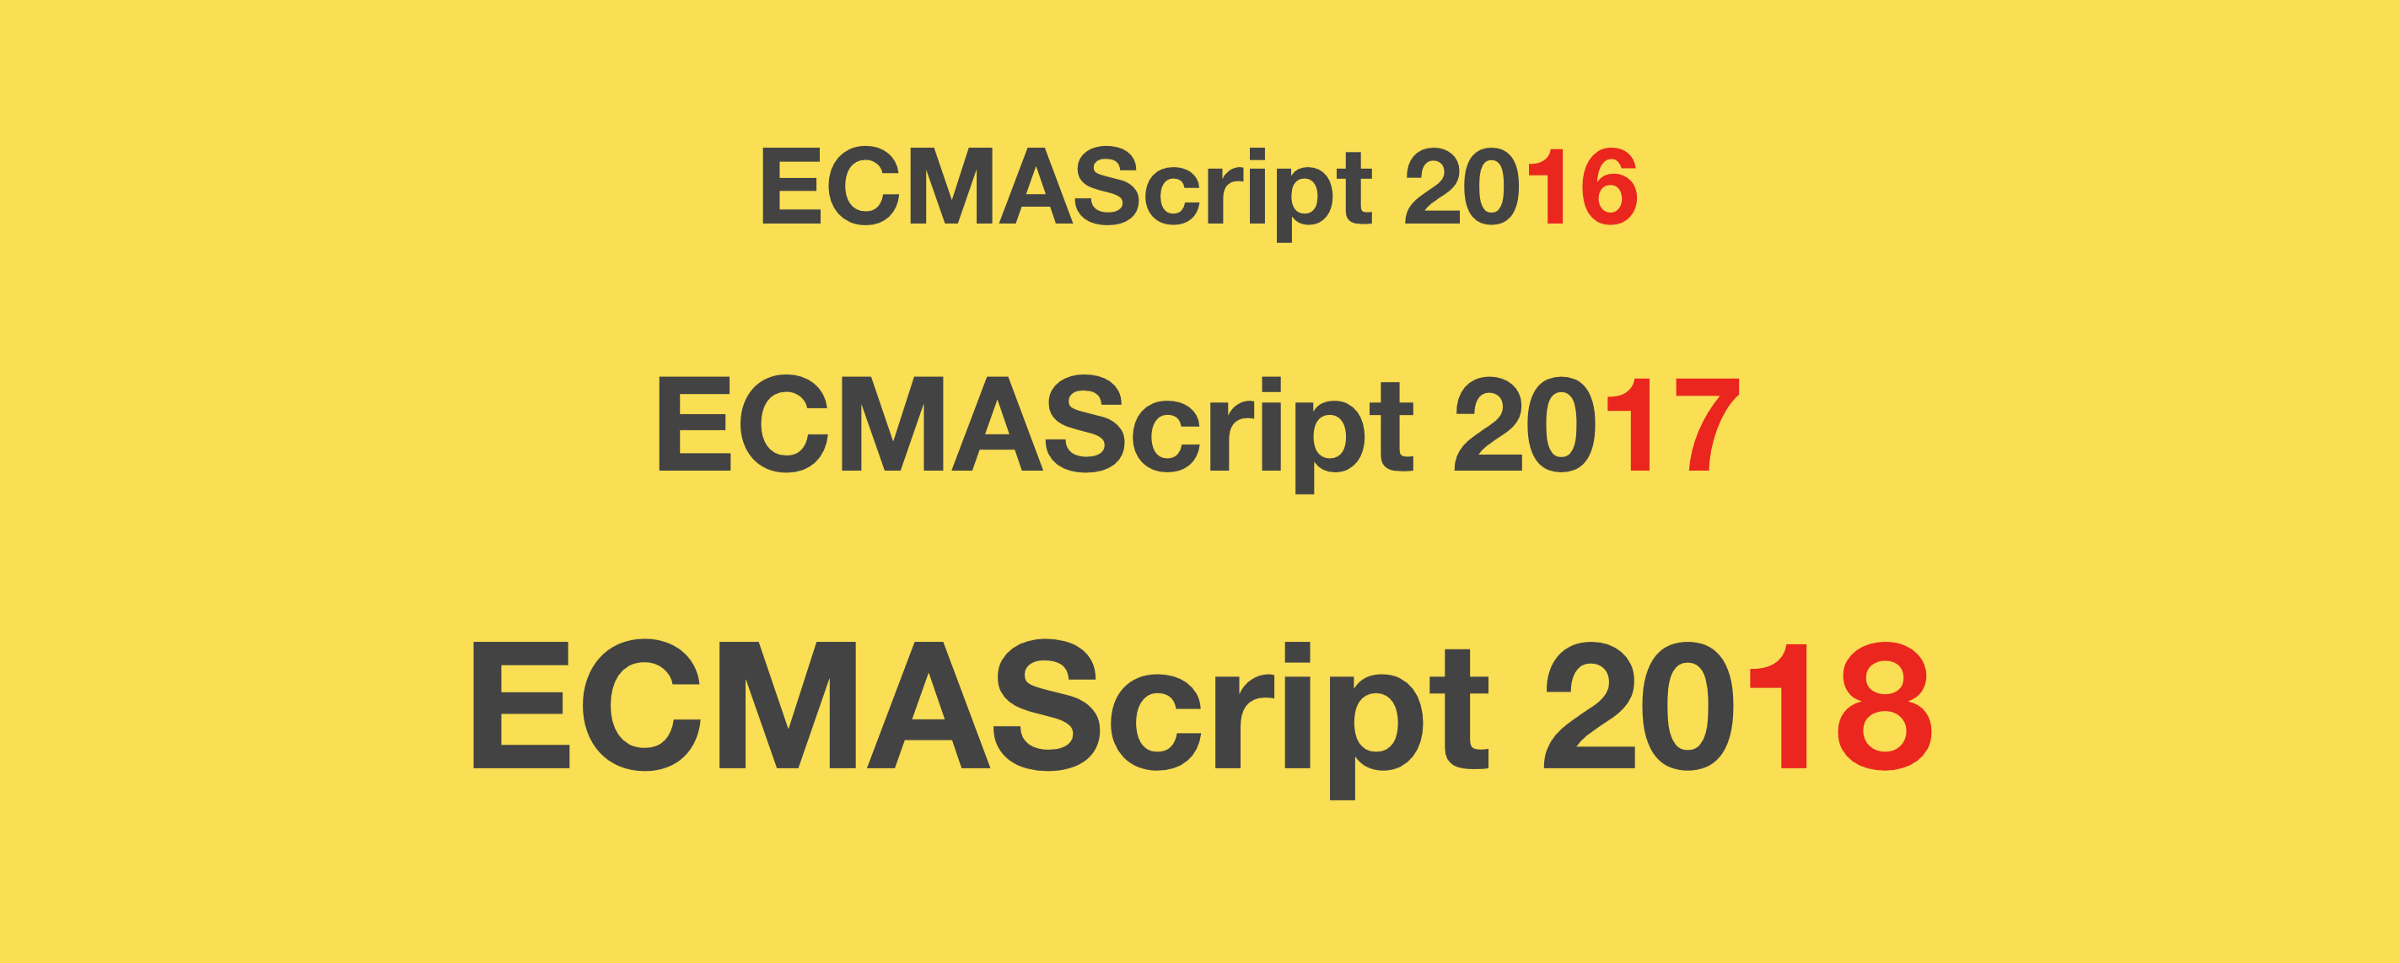 Here Are Examples Of Everything New In Ecmascript 2016 2017 And 2018